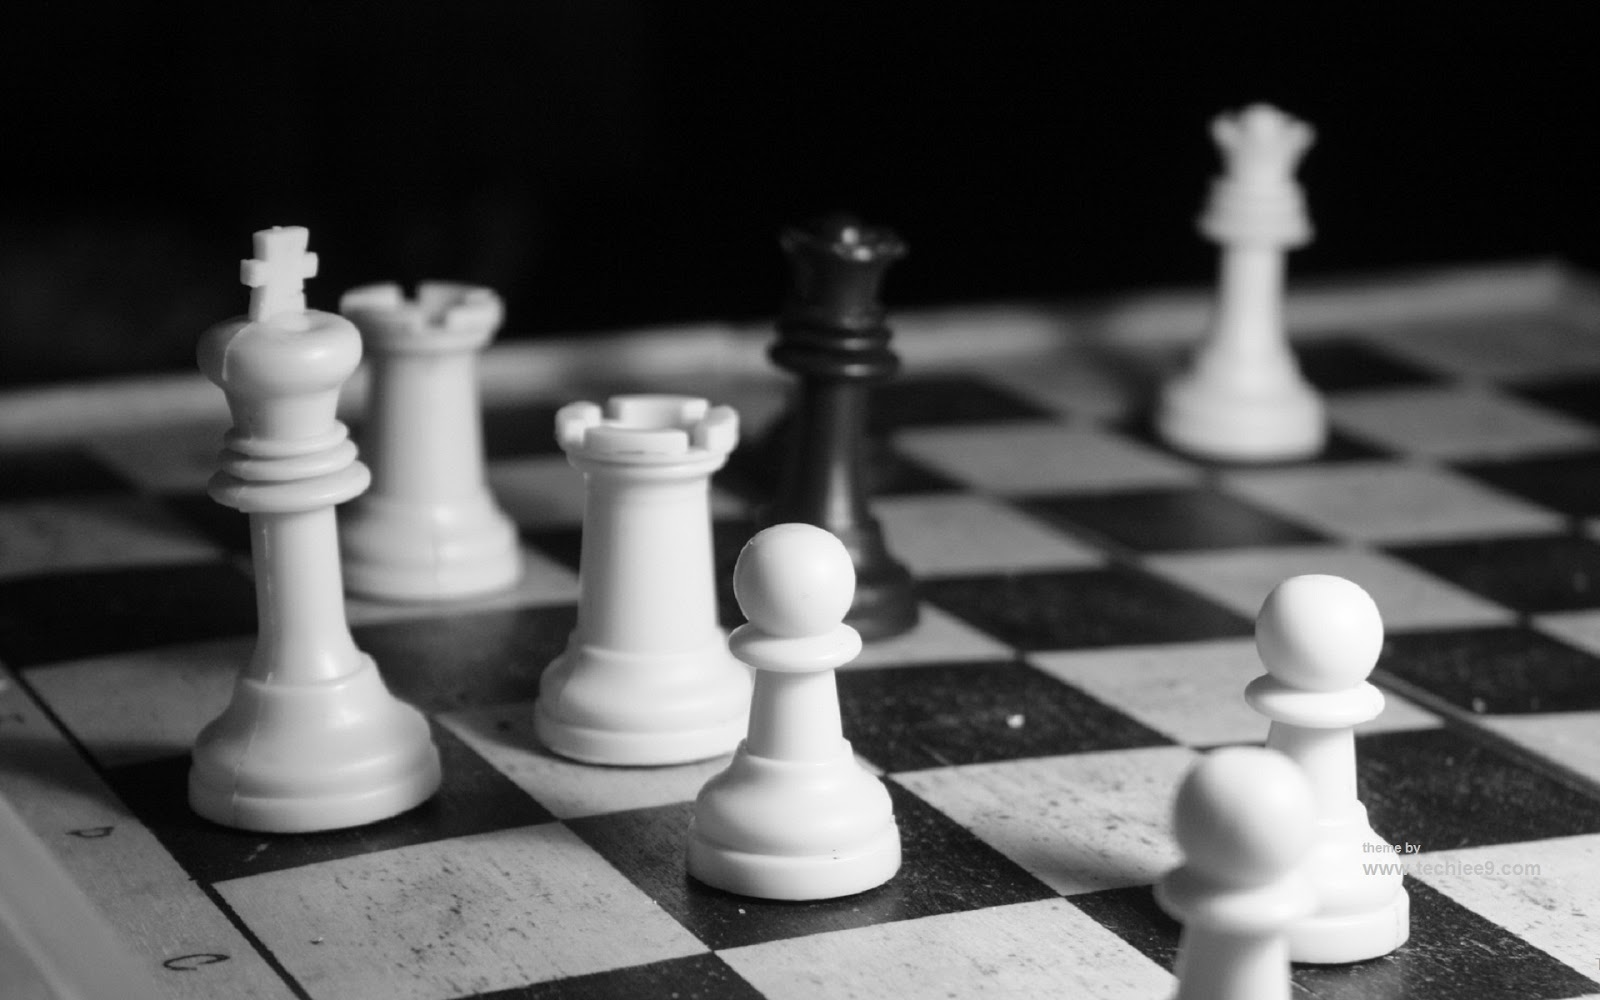 Chess Board full hd 1920x1080 widescreen wallpaper - hd wallpapers